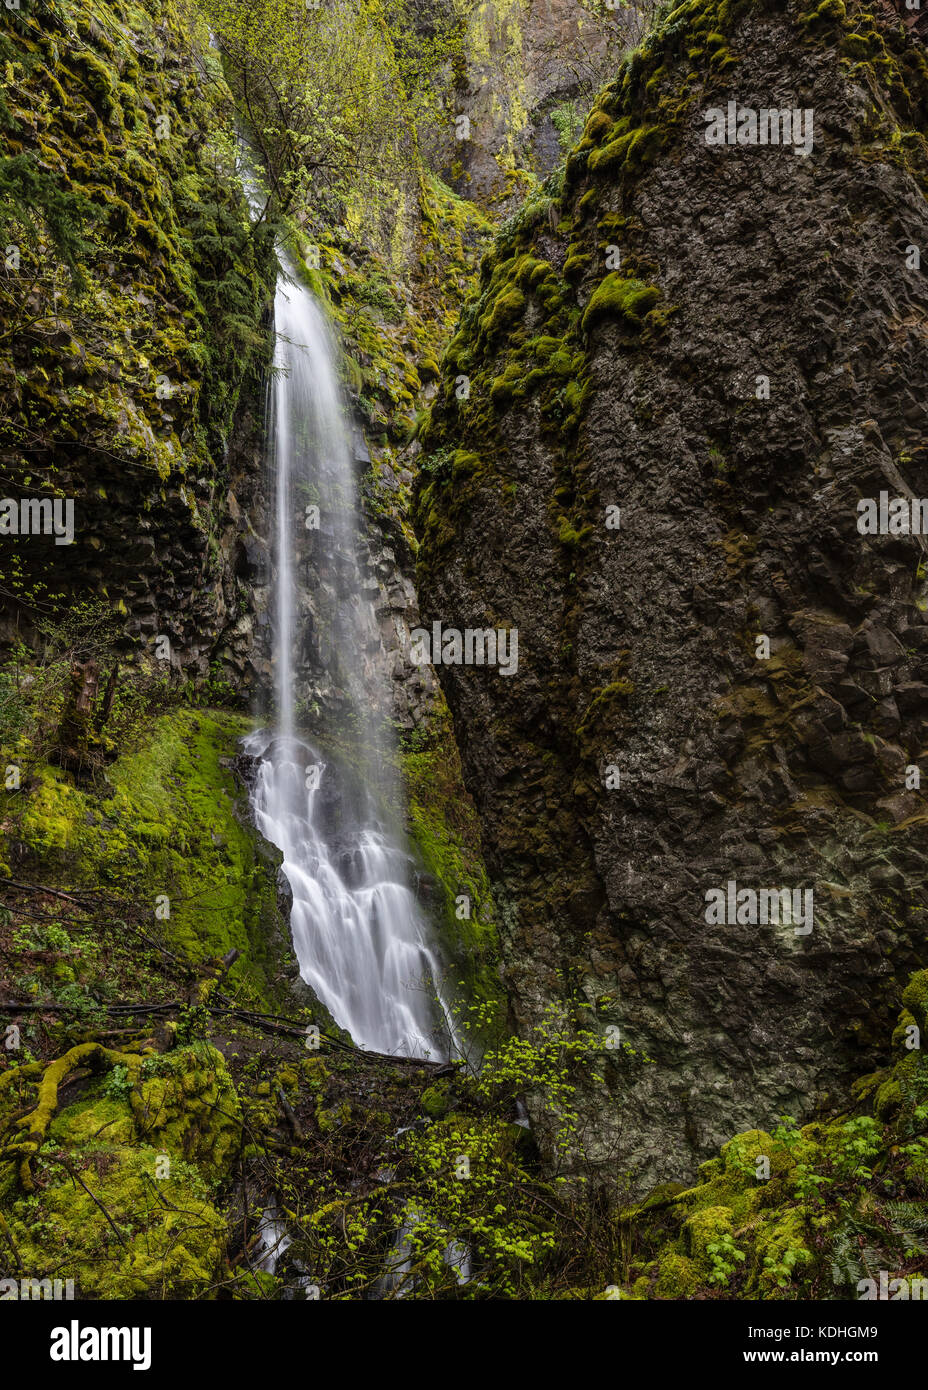 Starvation Creek Falls in the Columbia Gorge - Stock Image